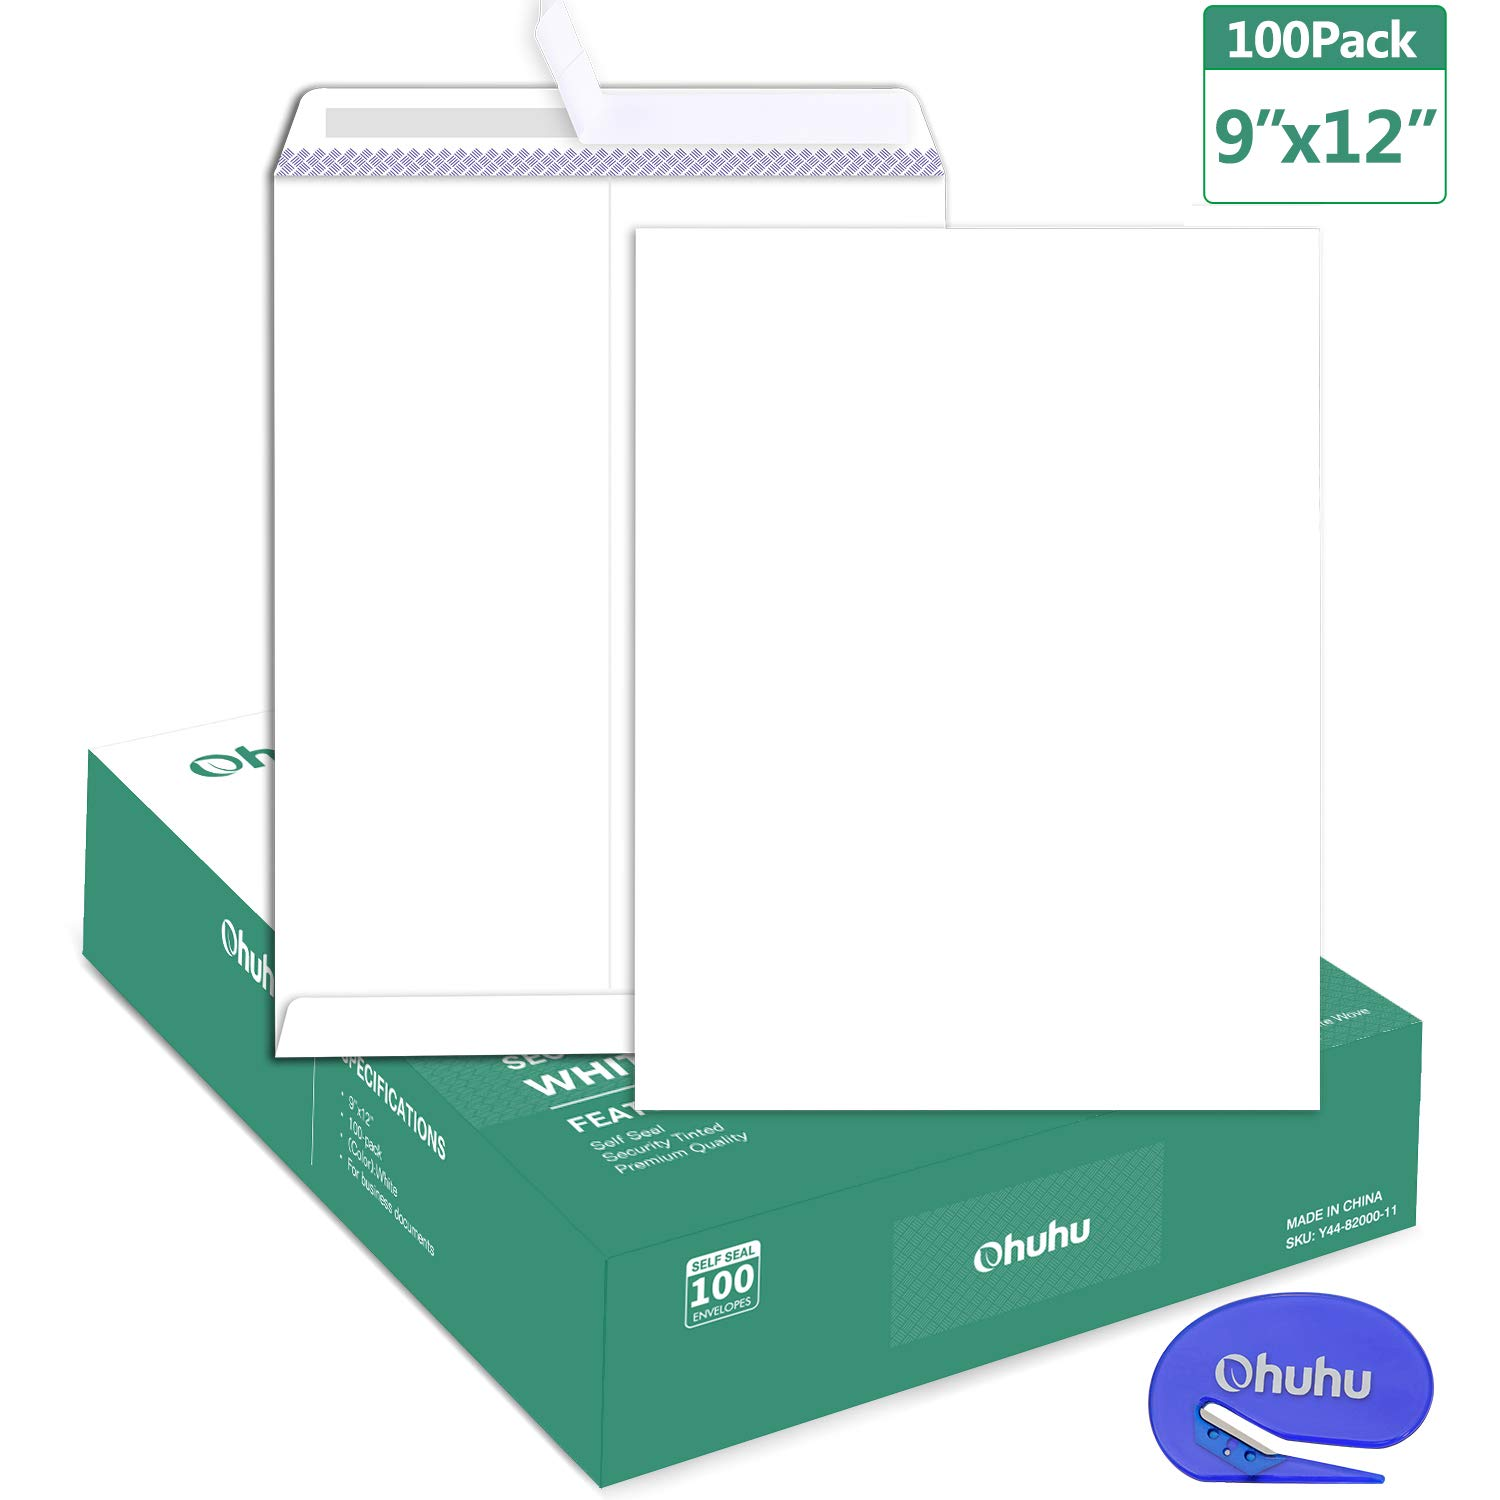 100 9 x 12 Self Seal Security White Catalog Envelopes Ohuhu, for Business Documents, Secure Mailing, Photos, Ultra Strong Quick-Seal, 100 Envelope with Letter Opener, 28 lb by Ohuhu (Image #1)